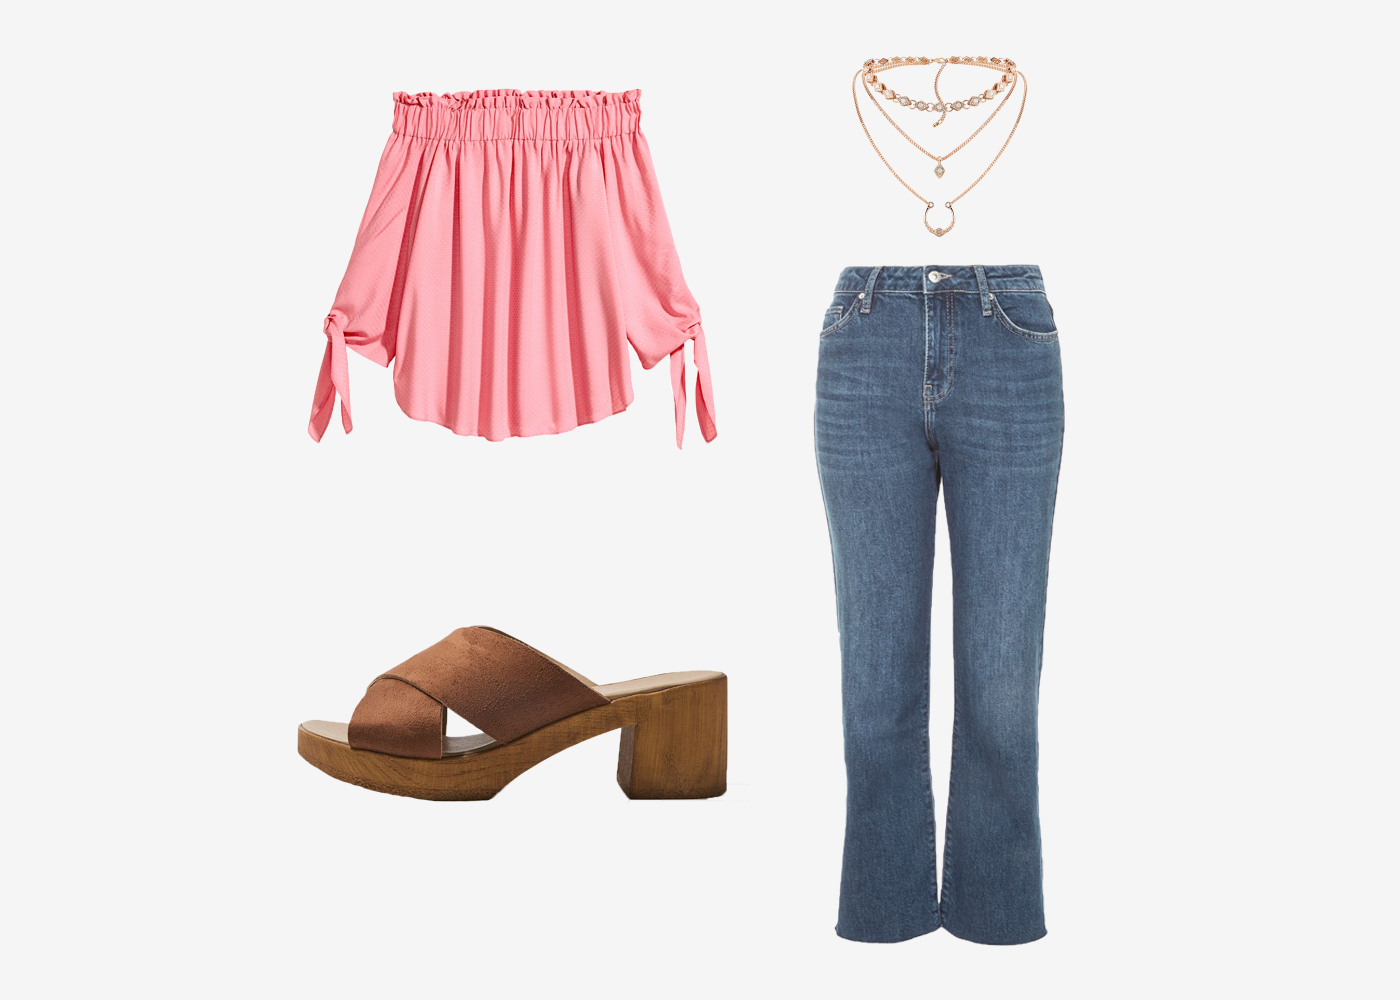 2a0c5919c978 Got a casual coffee date  You don t have to overthink your outfits to look  good. Dress up your classic denim jeans with a flirty off the shoulder top.